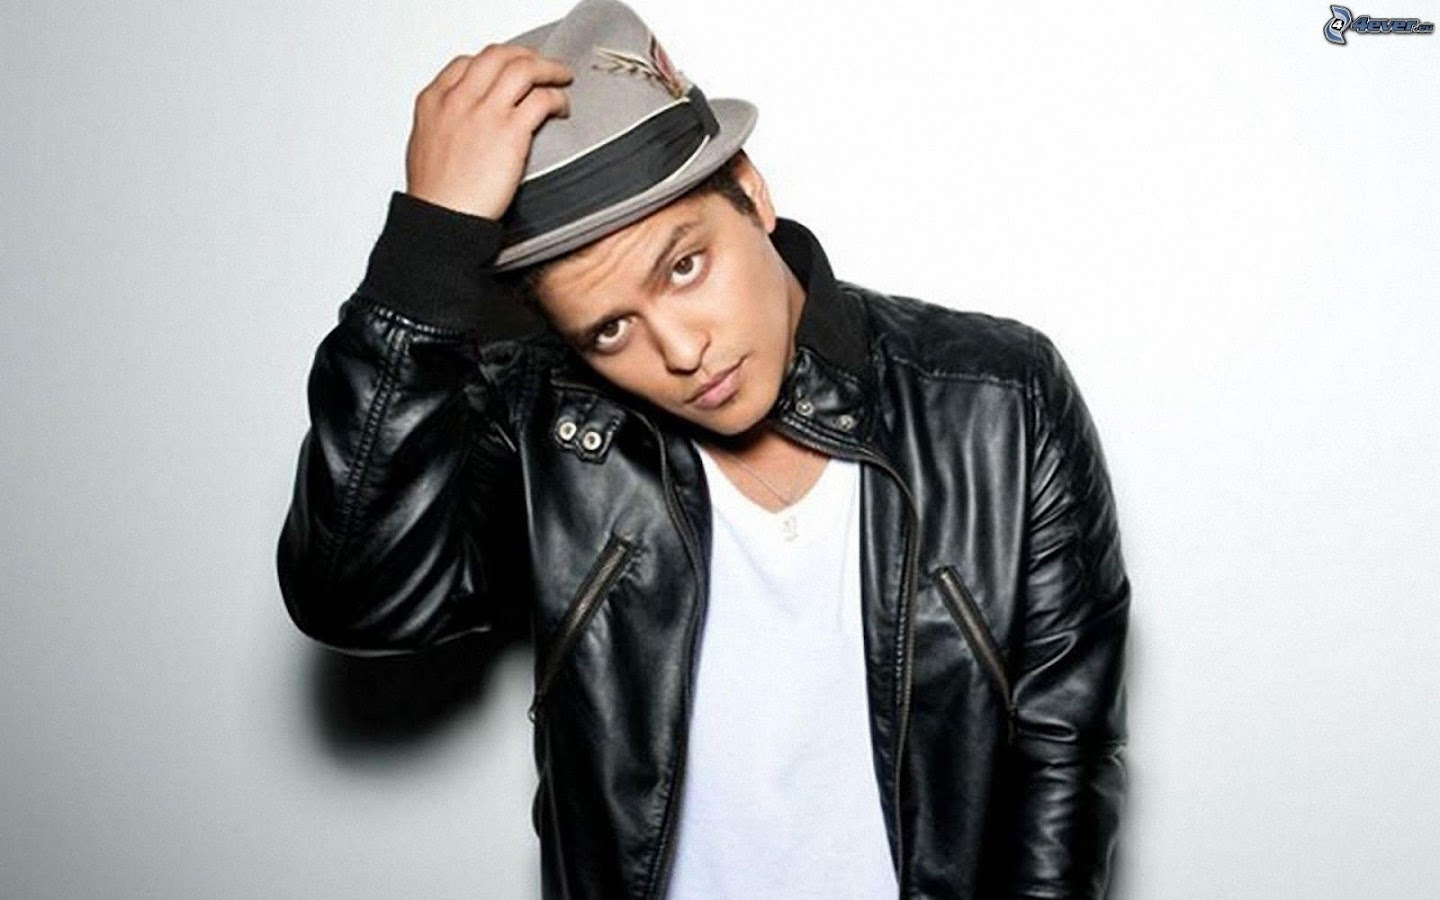 Bruno mars lyrics paroles - Android Apps on Google Play